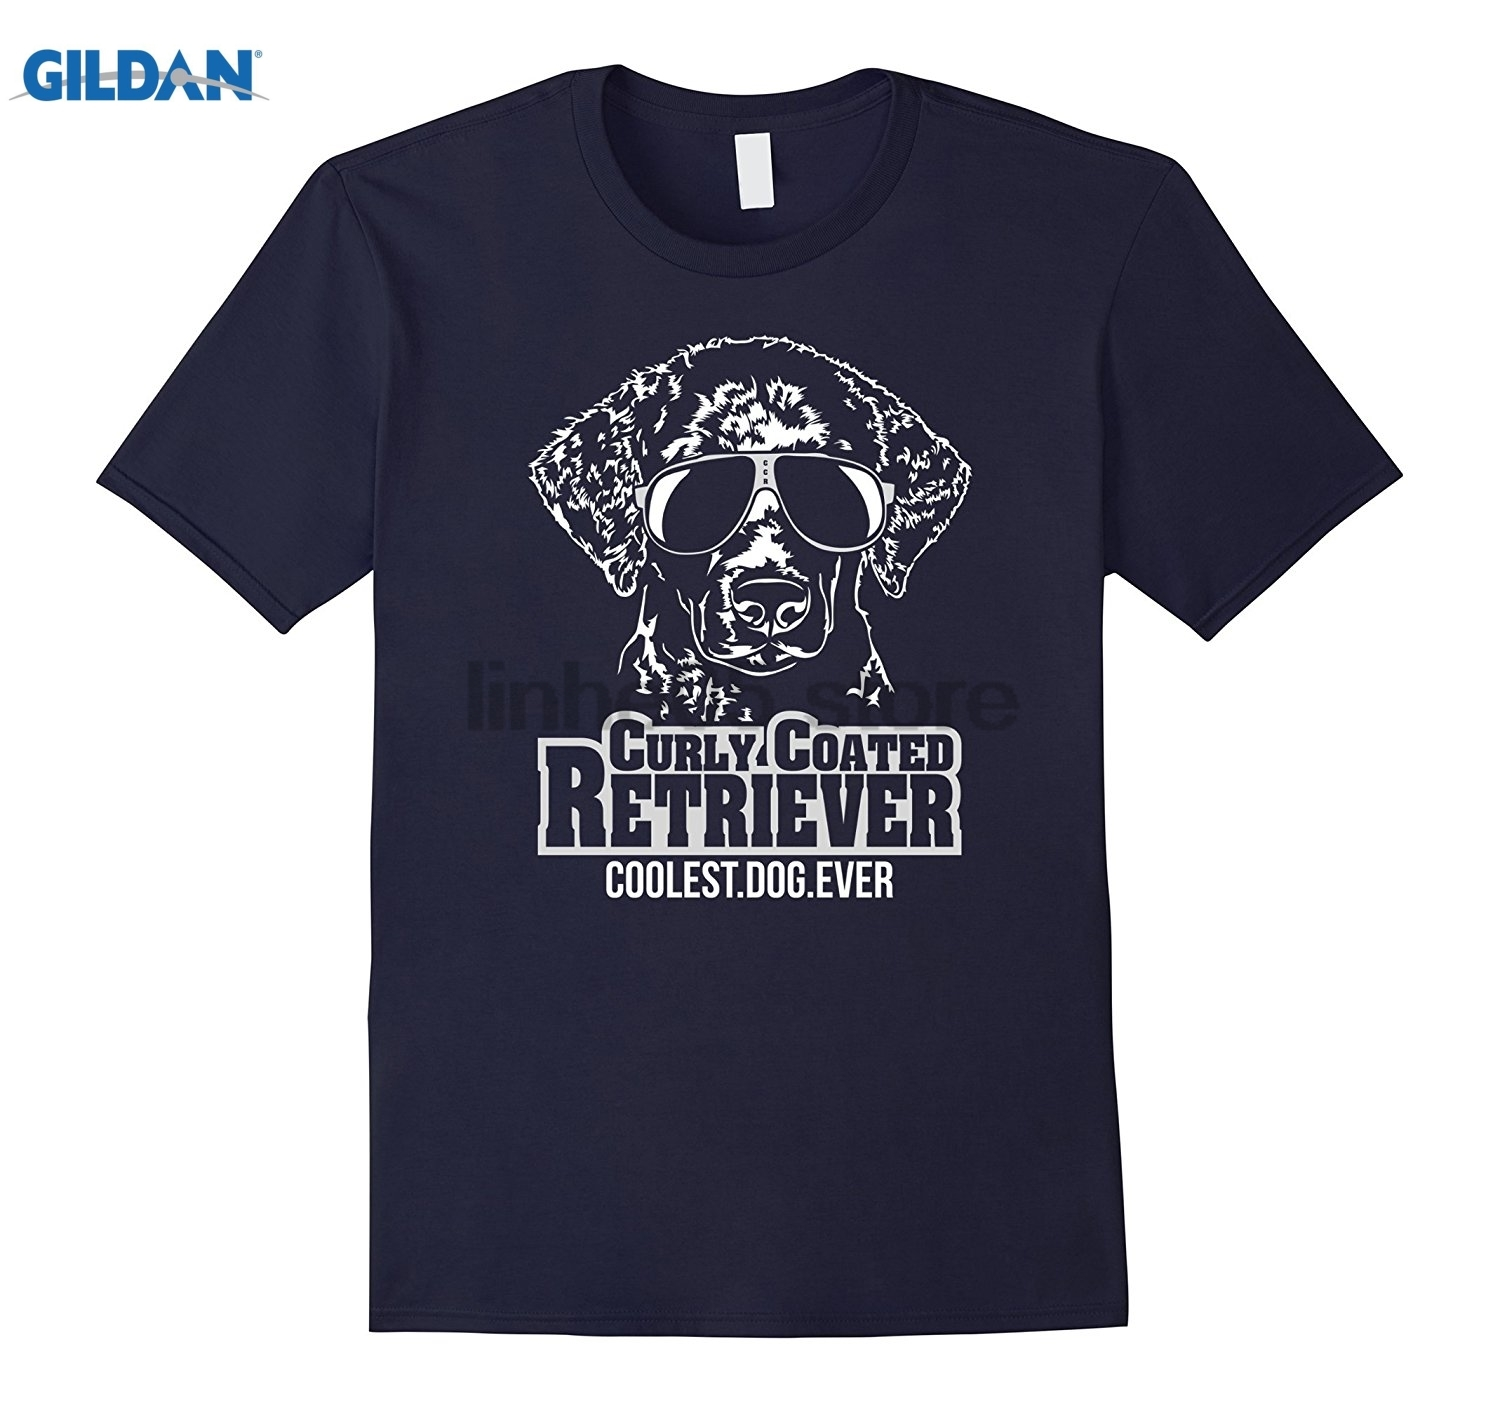 GILDAN CURLY COATED RETRIEVER cool Hund Hunde Shirt T-Shirt Dress female T-shirt